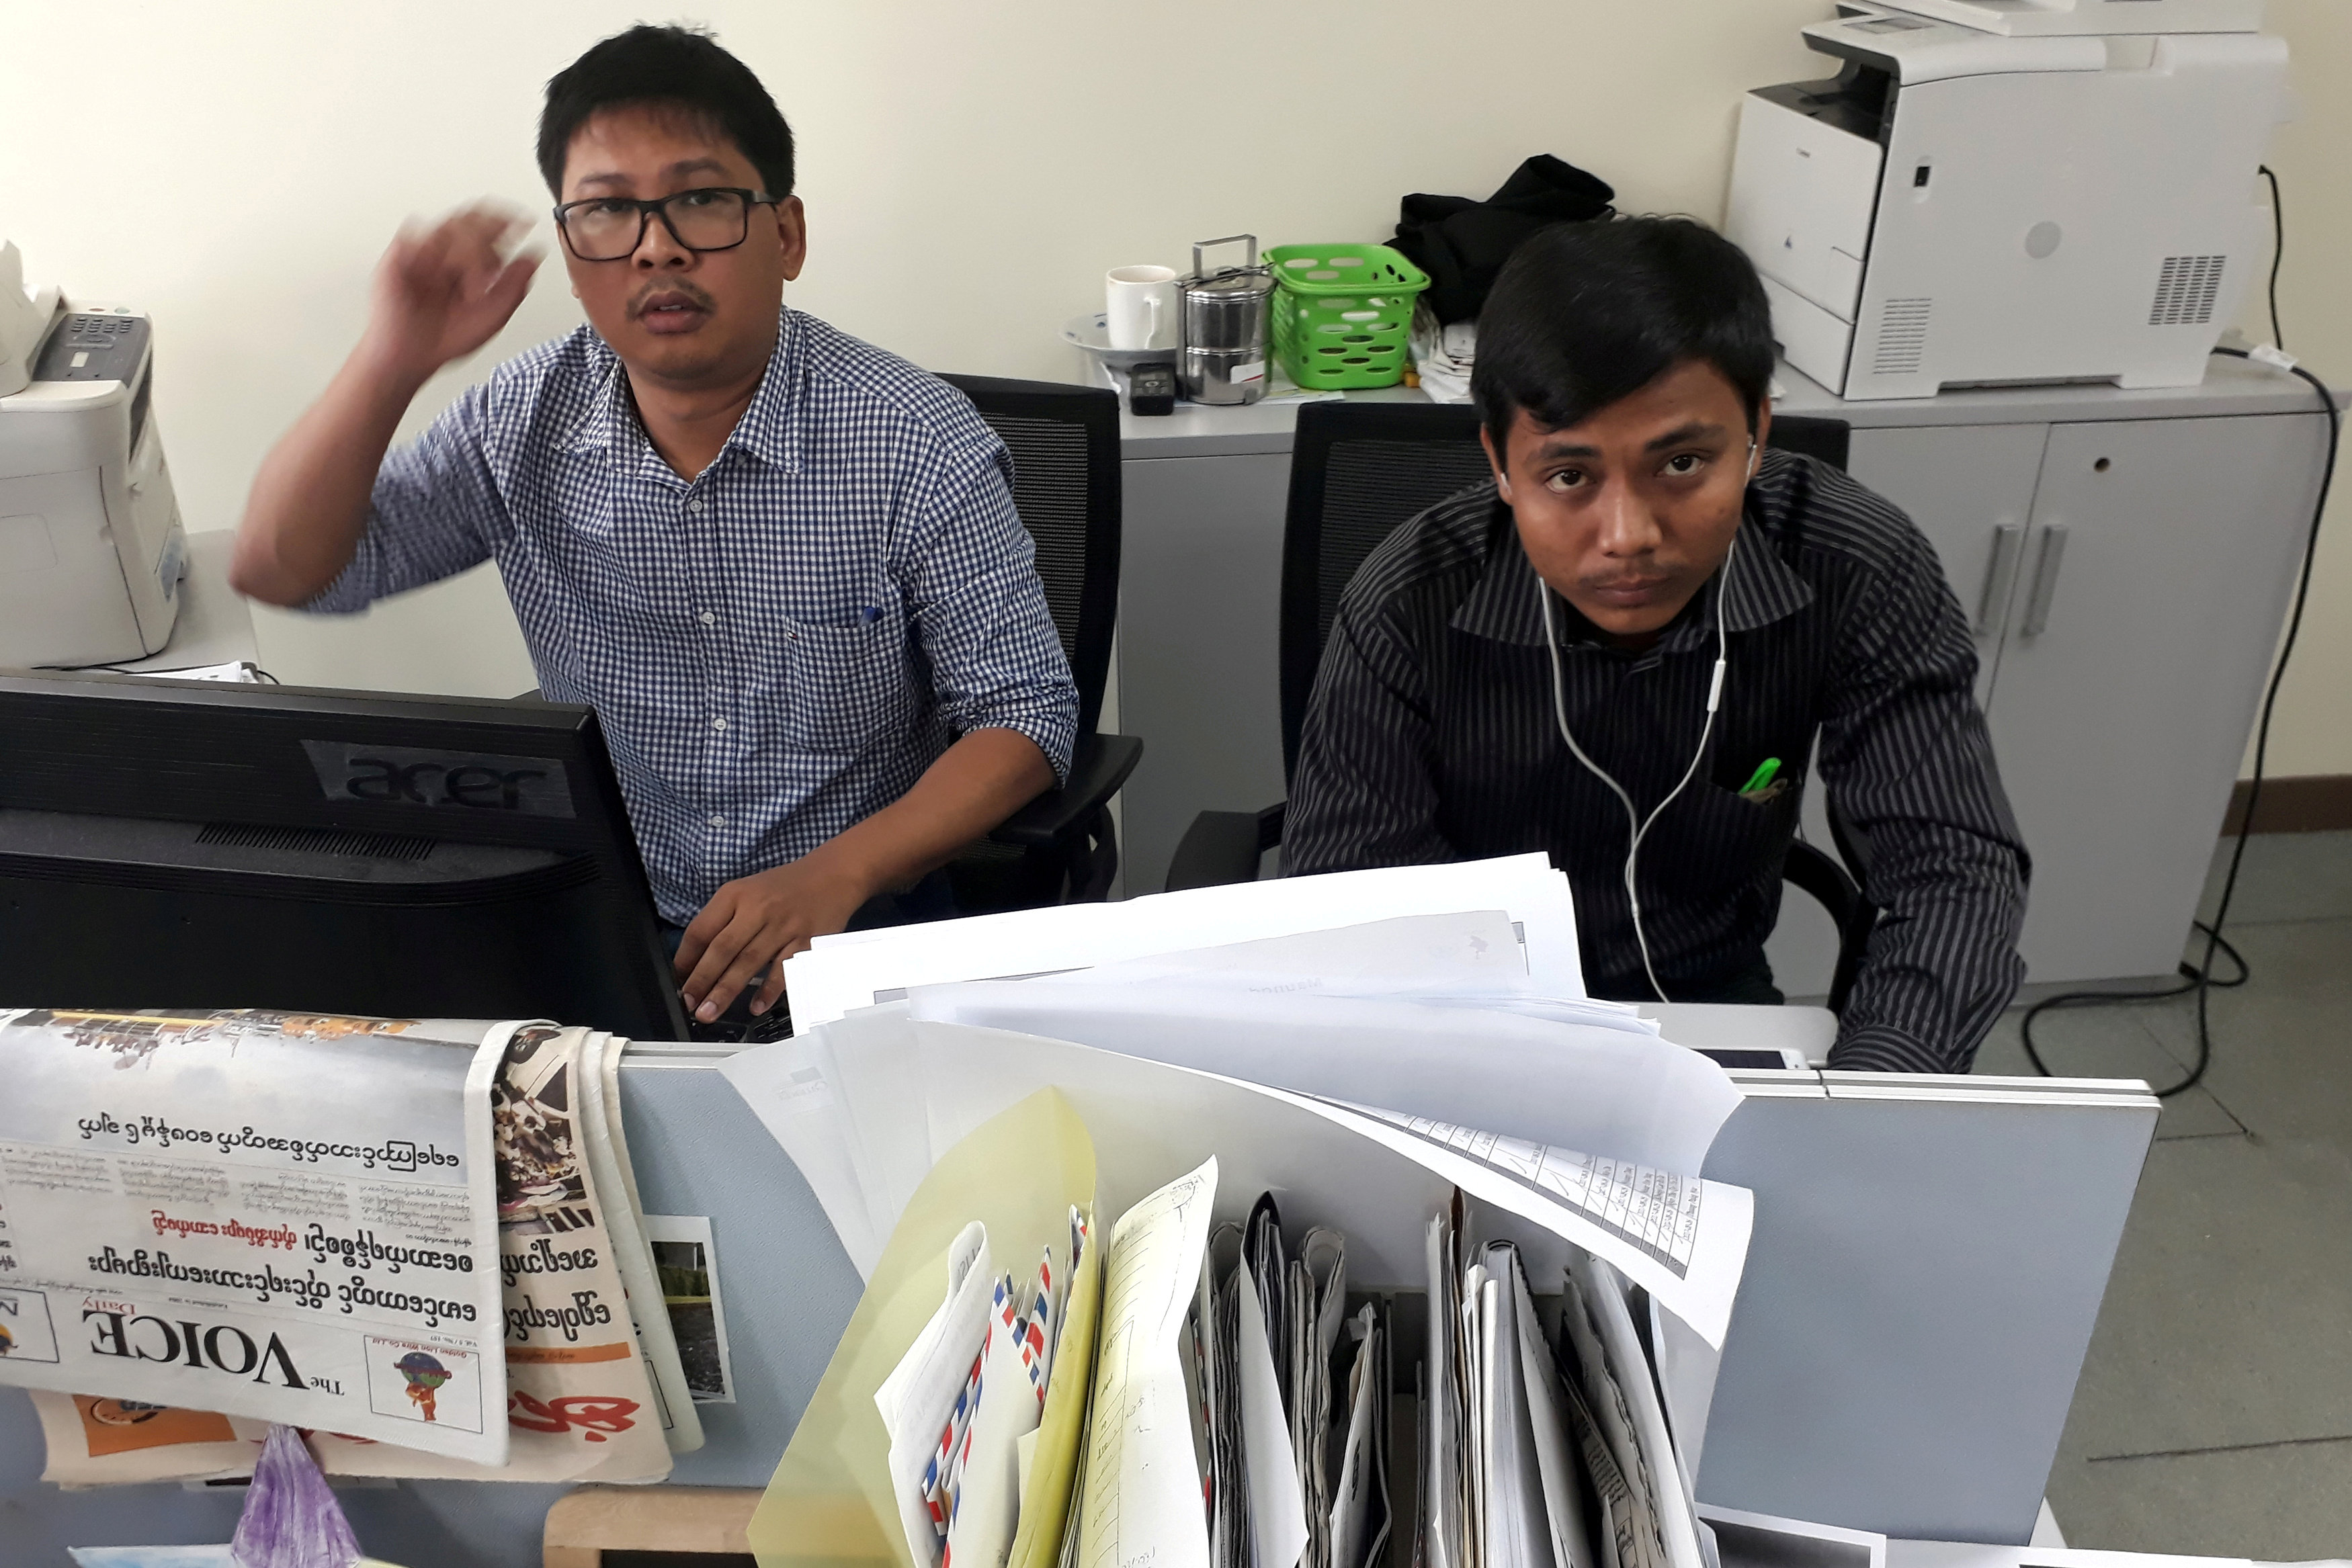 After one week, Myanmar silent on whereabouts of detained Reuters journalists